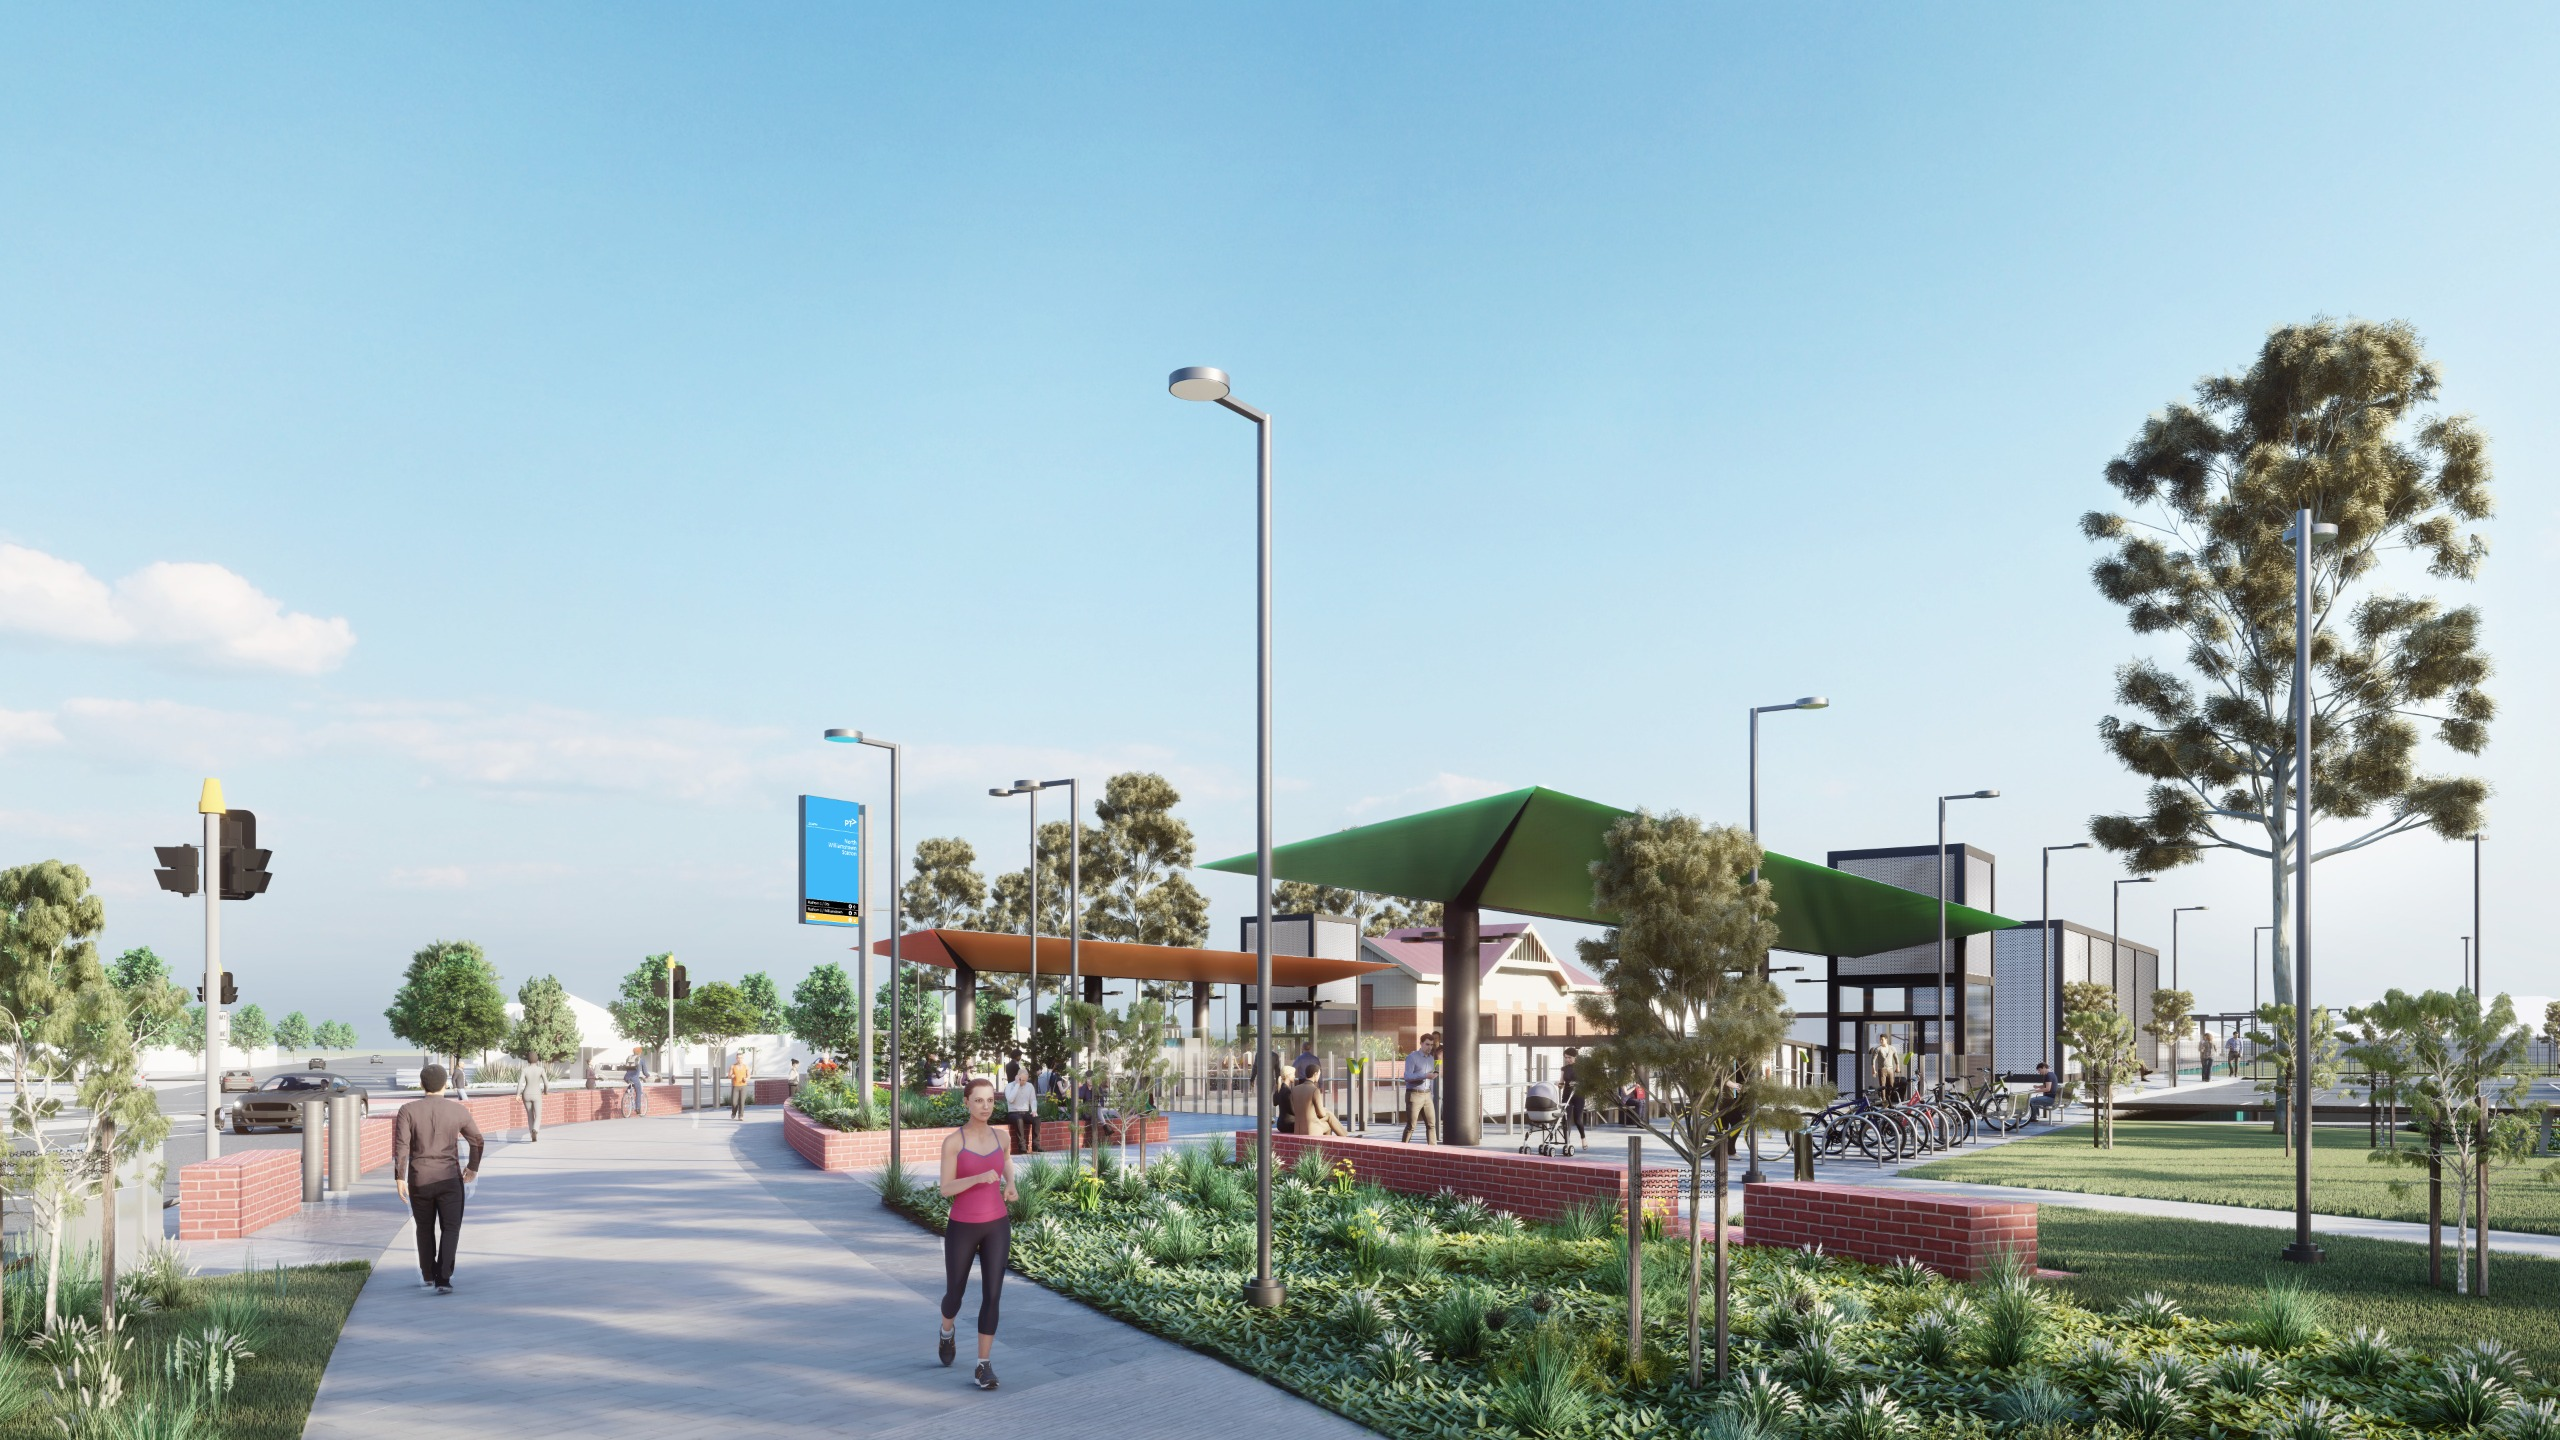 A new shared path will connect the east and west of the station precinct